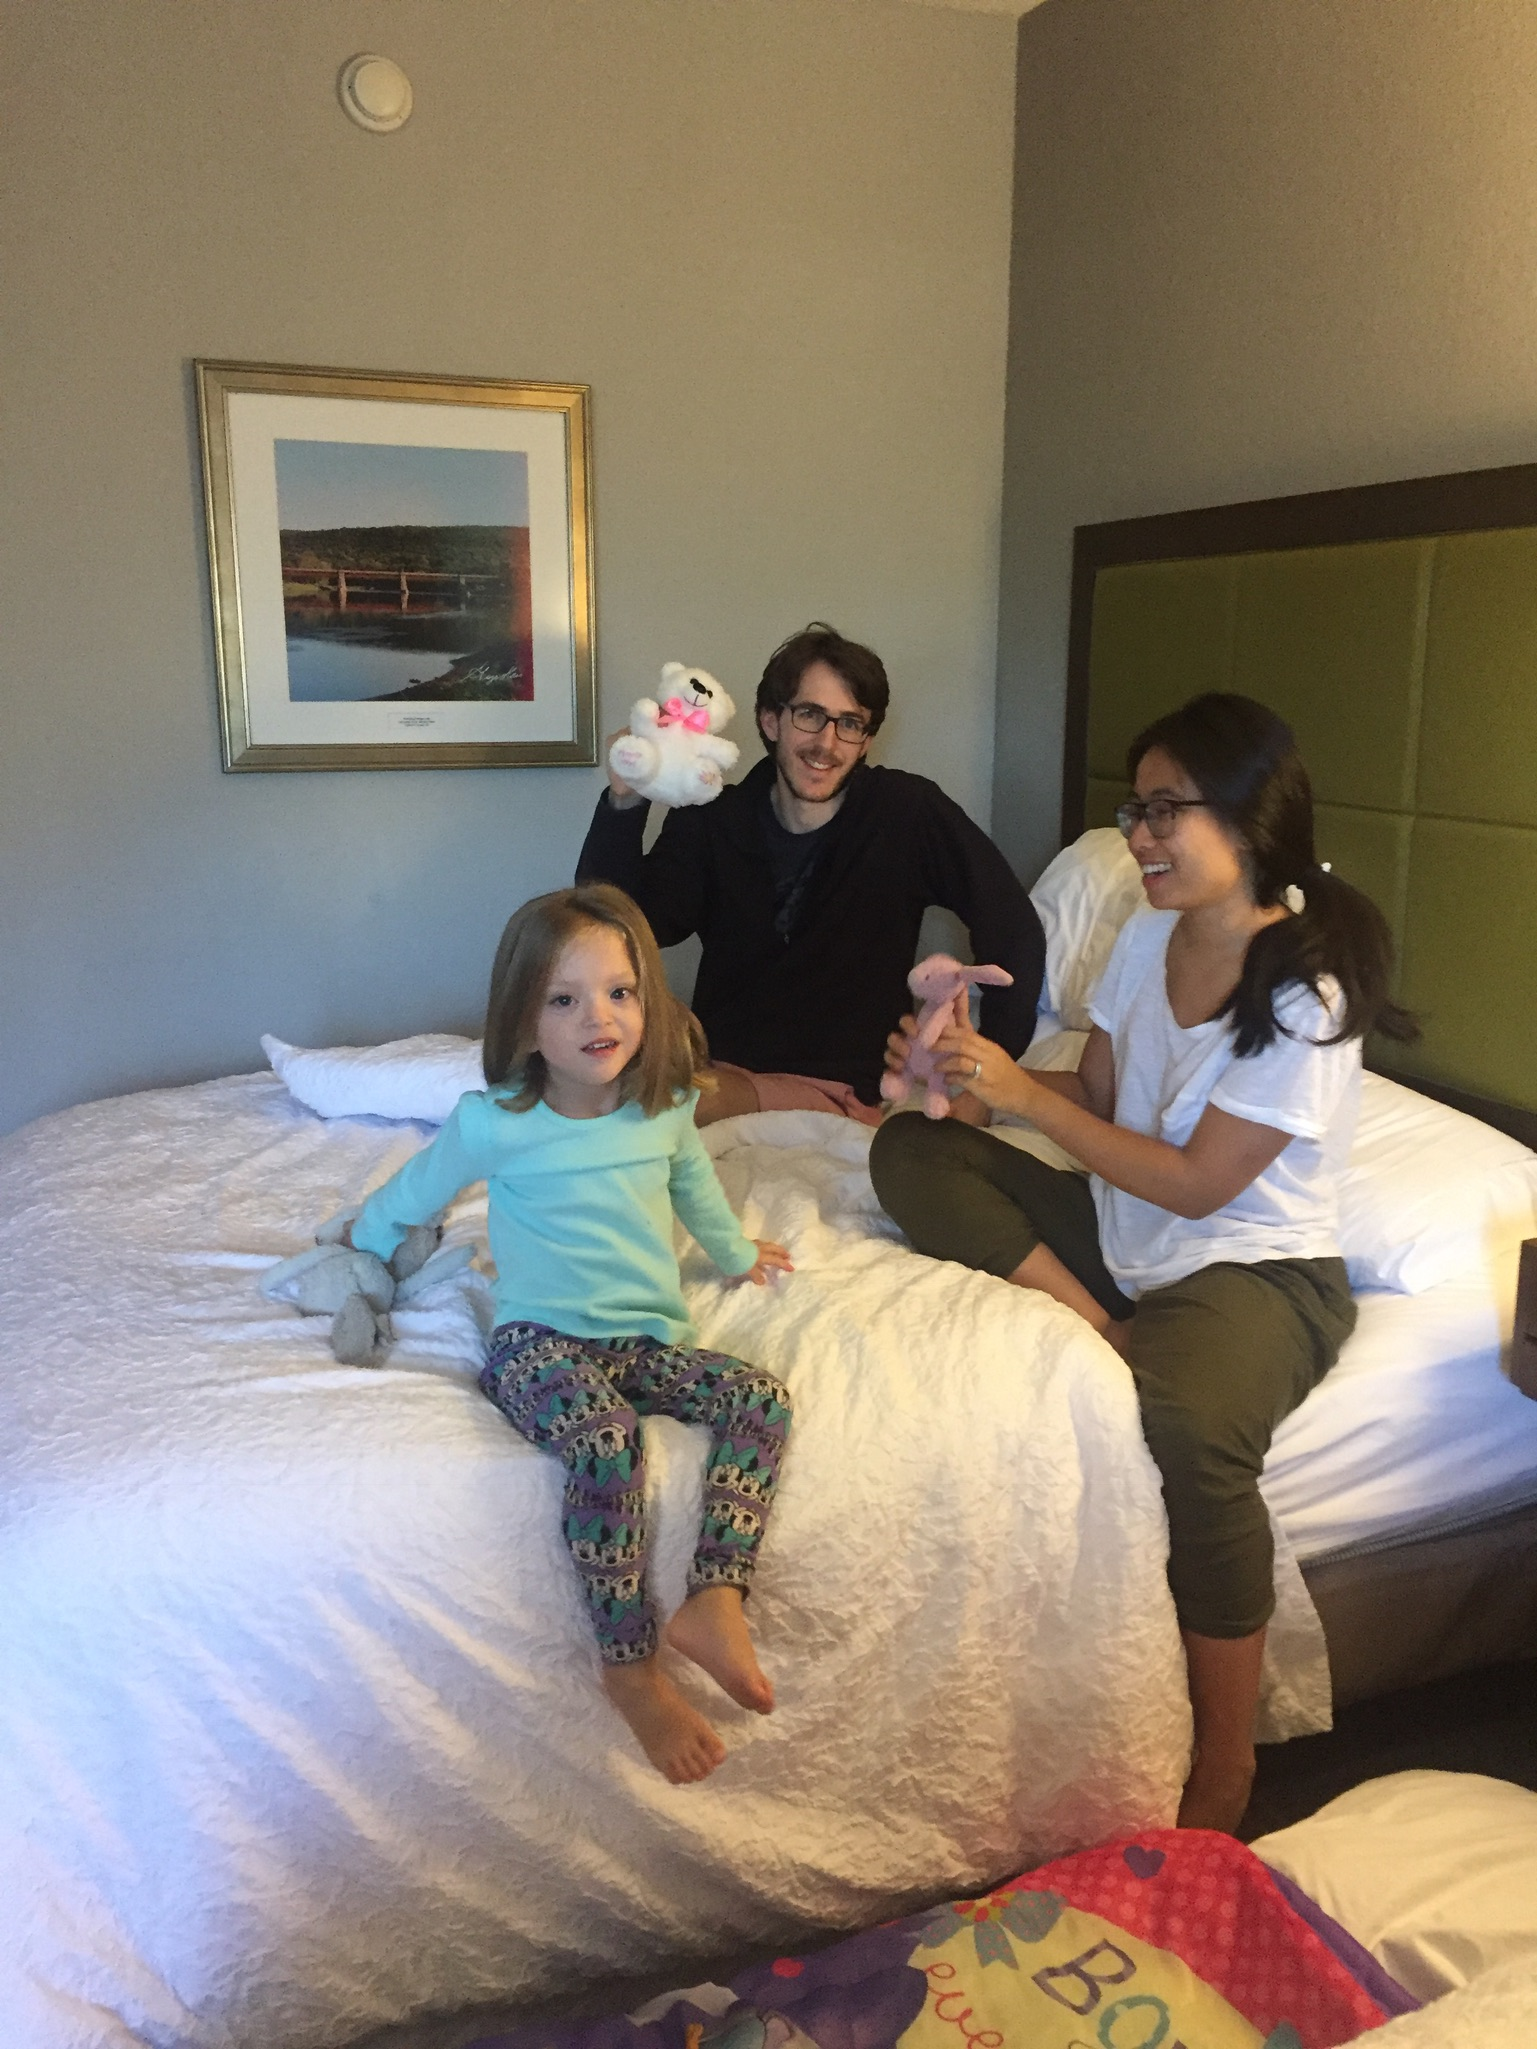 Being silly in the hotel with Uncle Dan and Aunt Sharon